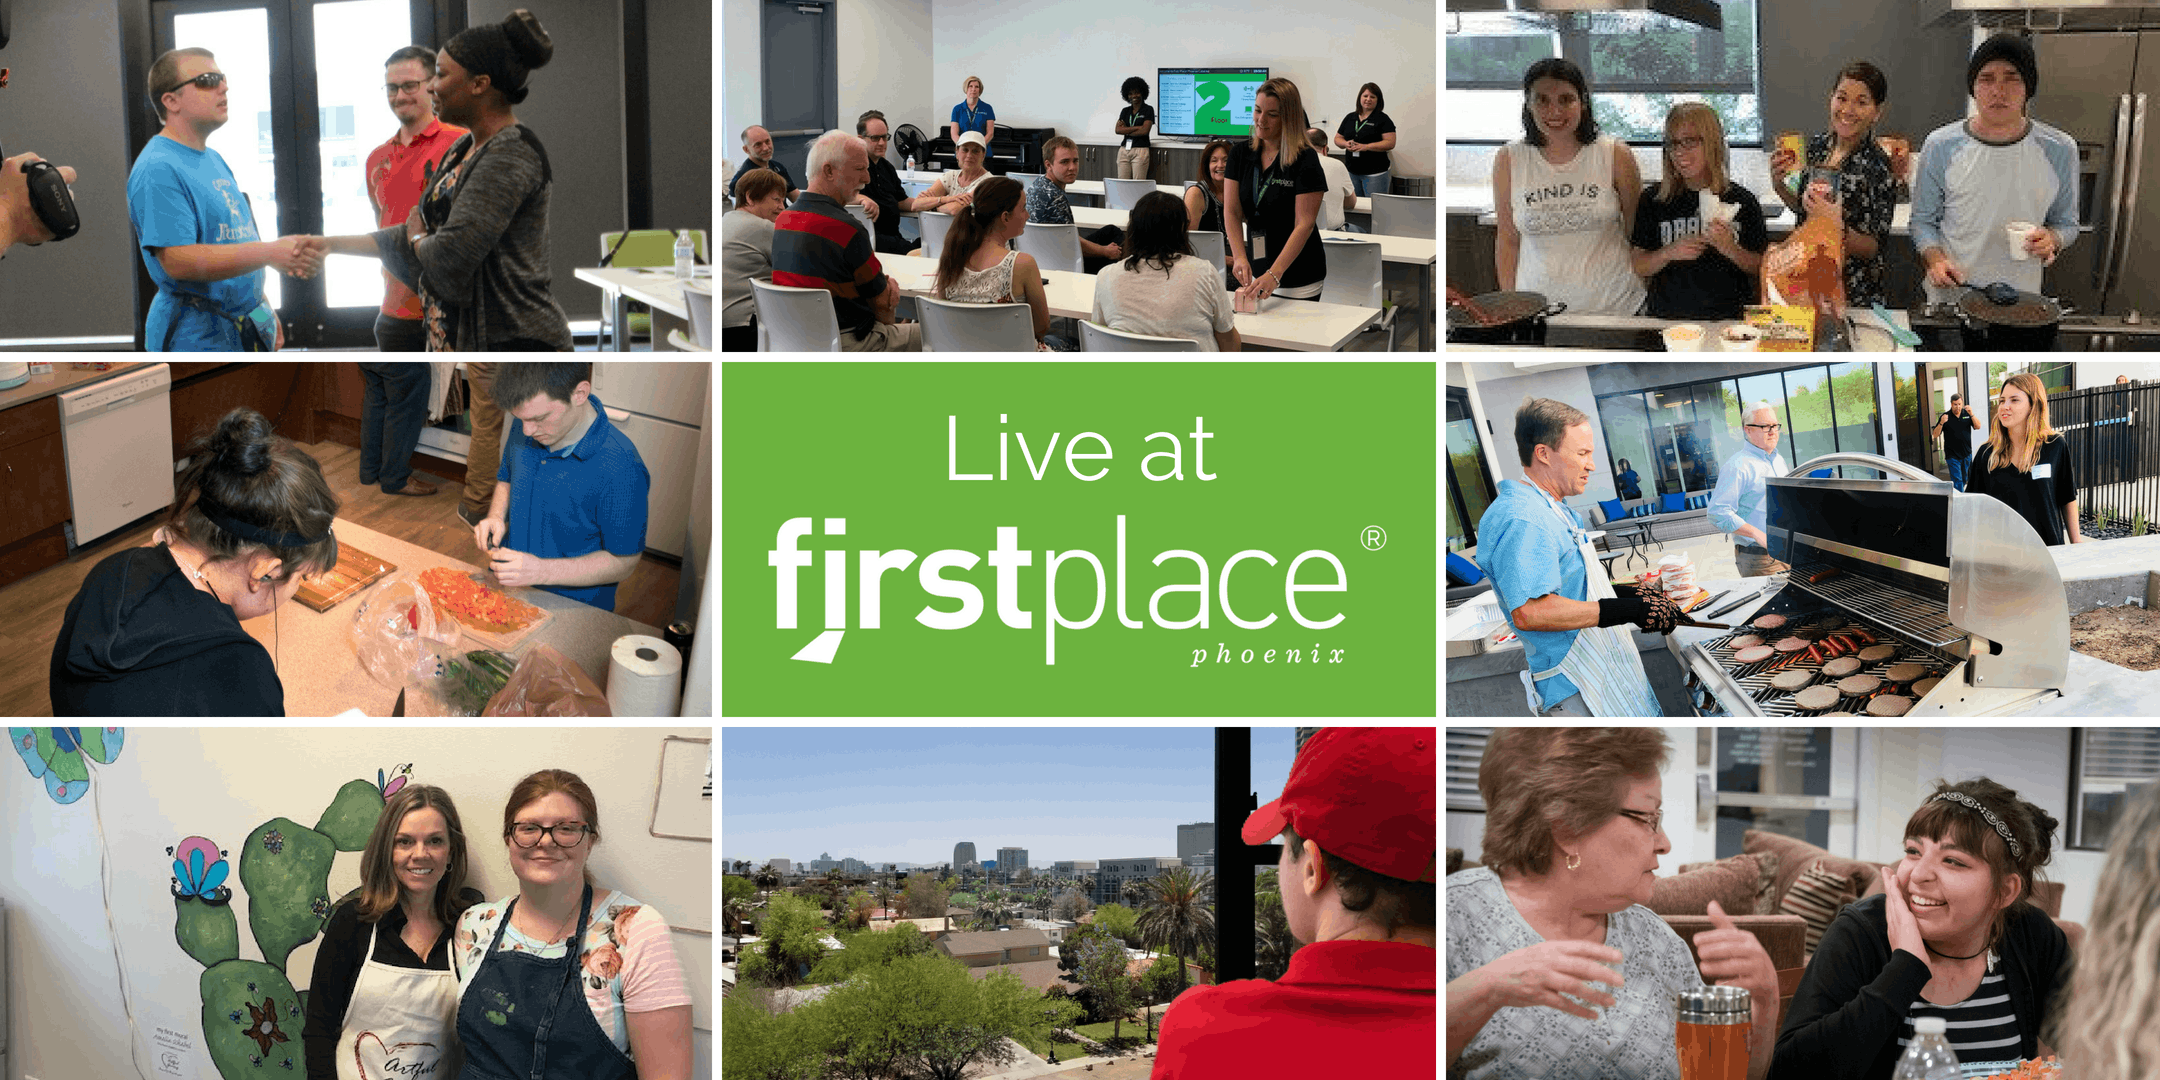 Explore First Place–Phoenix - March 28